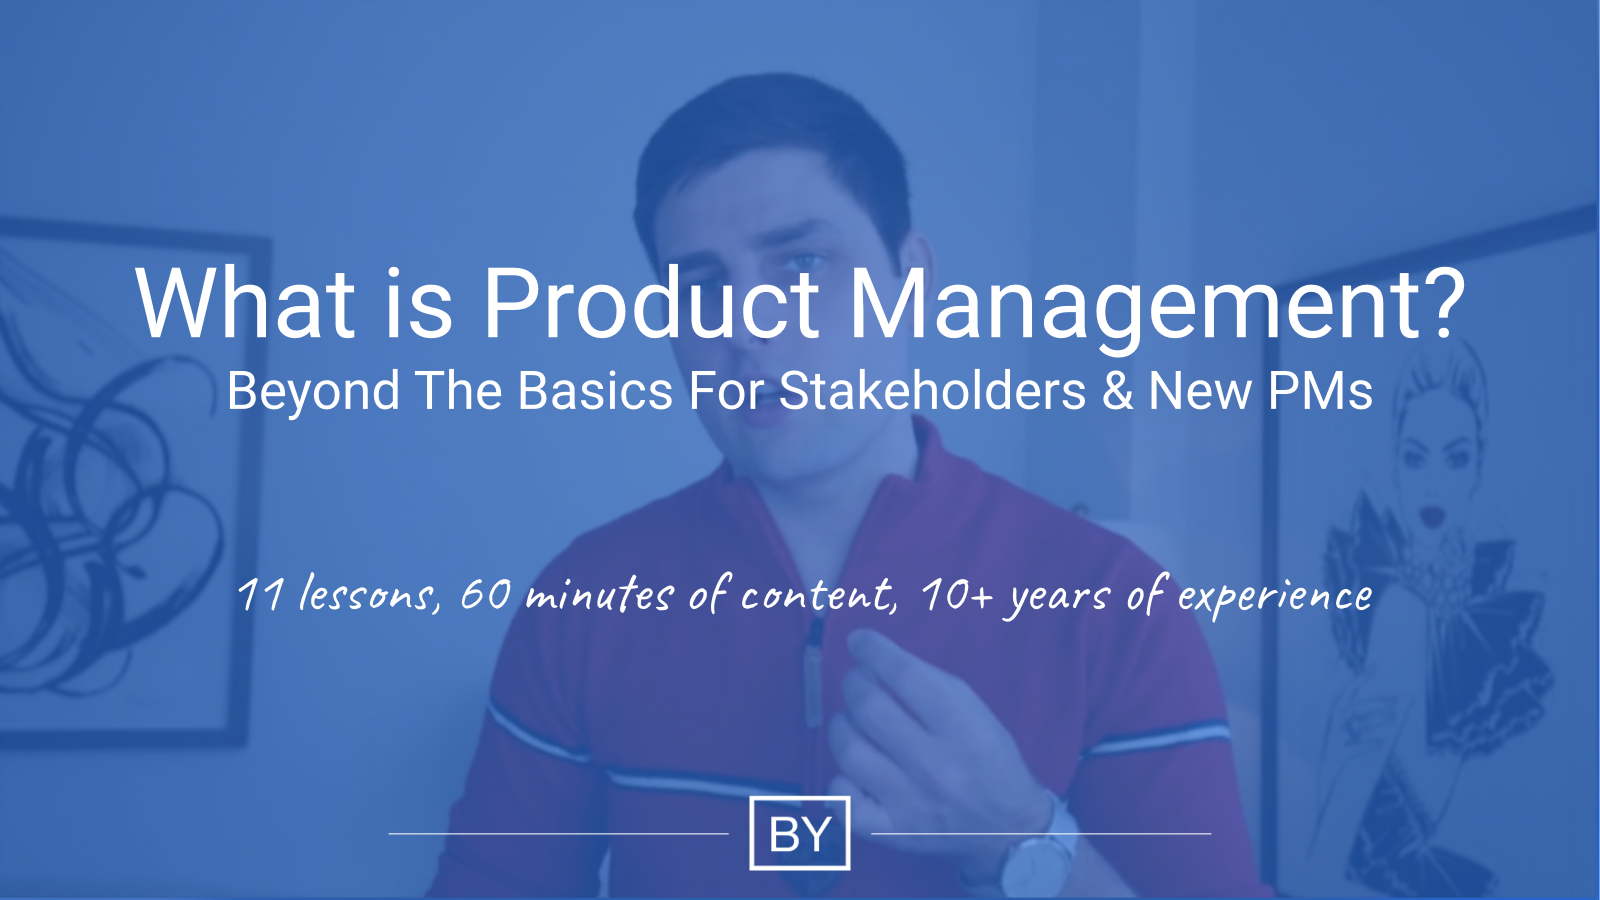 Product Management - Beyond The Basics Video Course Thumbnail